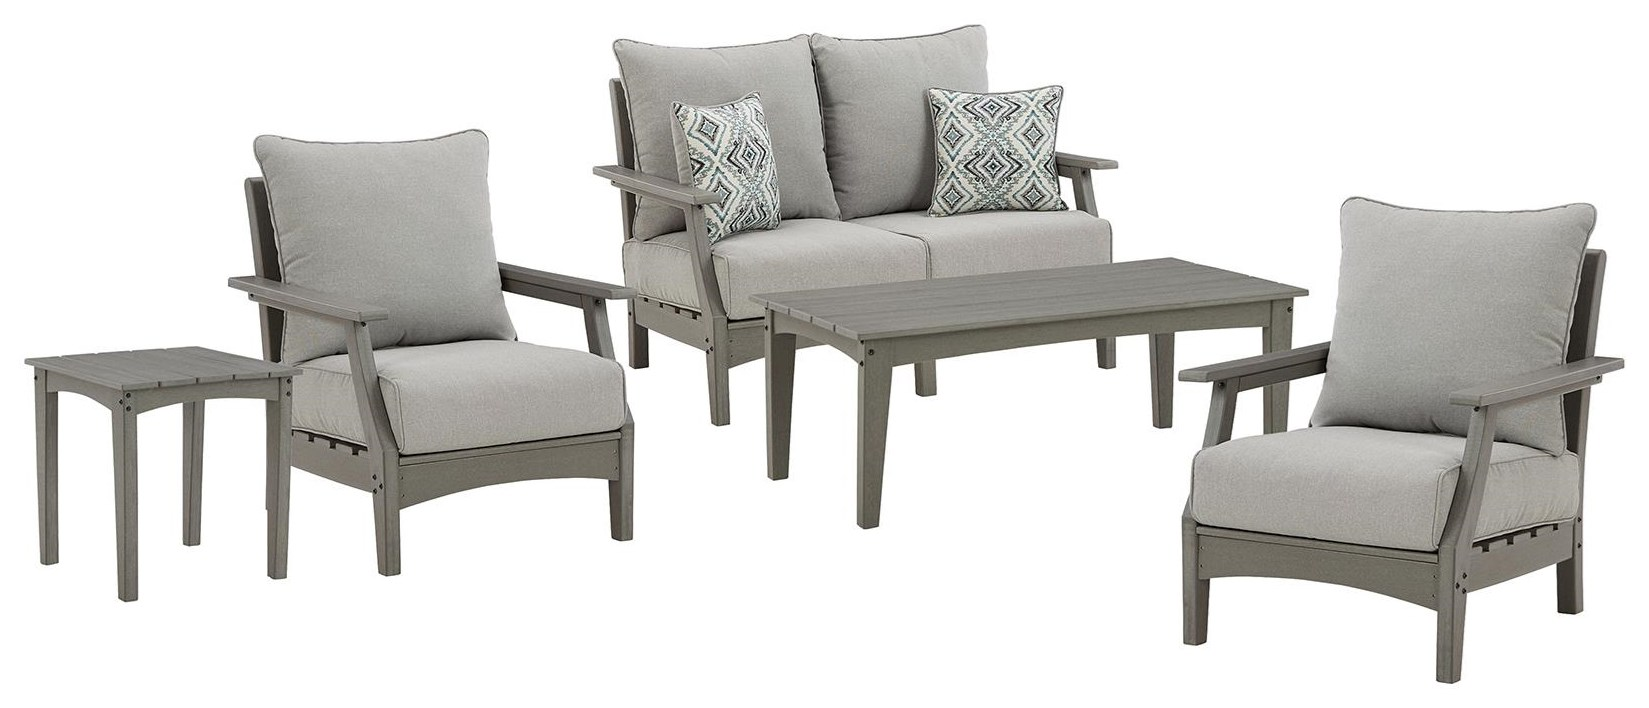 Visola Loveseat, CHAIRS, END And COCKTAIL TABLES by Ashley (Signature Design) at Johnny Janosik